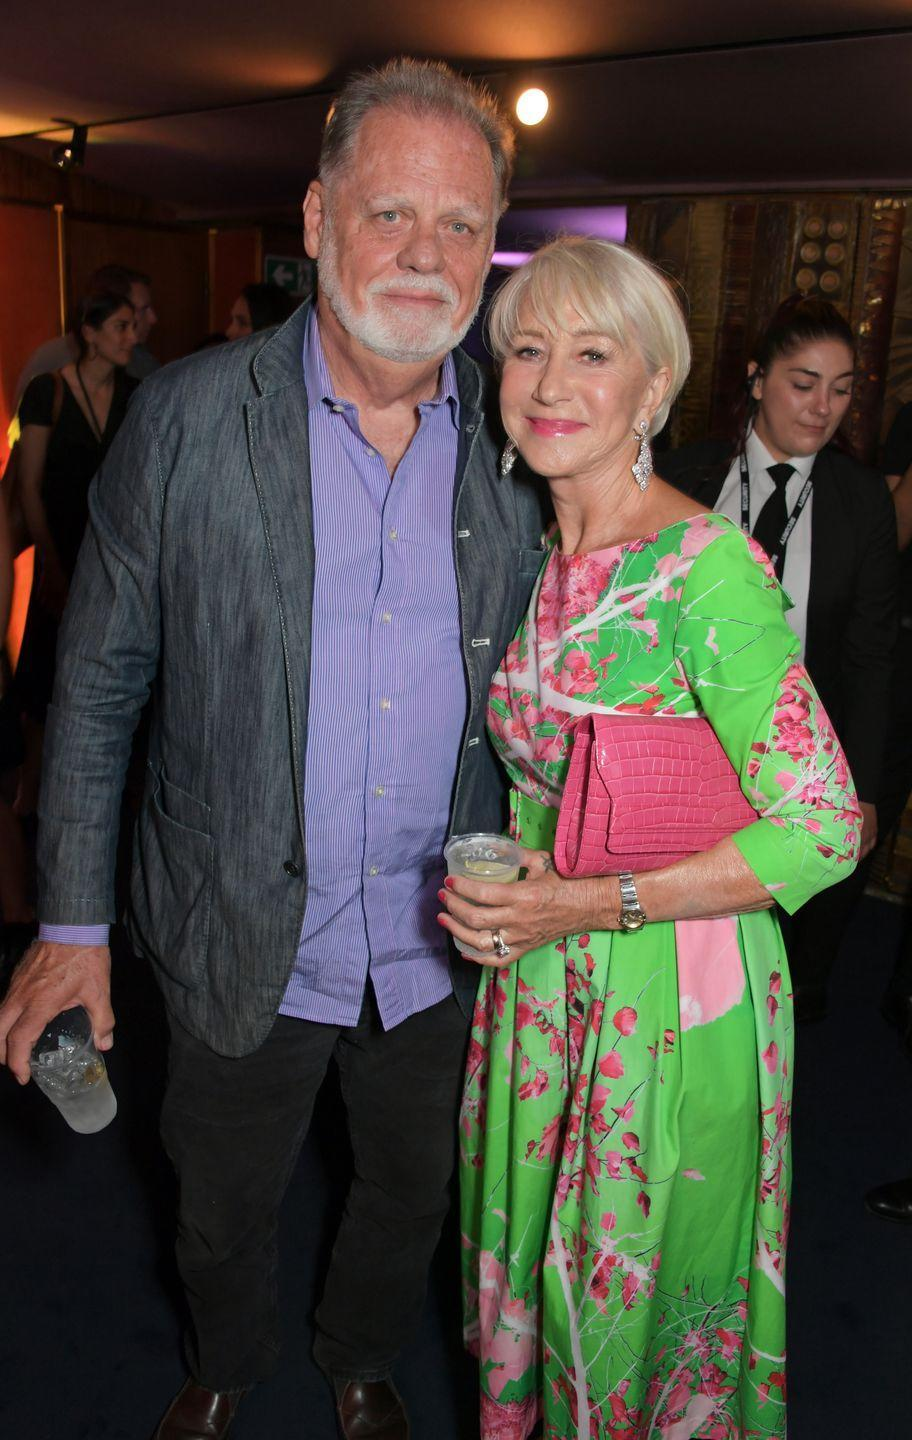 """<p><strong>How long they've been together:</strong> Mirren met her director husband, Hackford, when she was 38 years old. """"I did very consciously choose my work over my relationships right up to the time that I met Taylor,"""" Mirren told <em><a href=""""https://www.aarp.org/entertainment/movies-for-grownups/info-2016/helen-mirren-celebrity-interview.html"""" rel=""""nofollow noopener"""" target=""""_blank"""" data-ylk=""""slk:AARP Magazine"""" class=""""link rapid-noclick-resp"""">AARP Magazine</a></em>. The two married in 1997, 10 years after they started dating. </p><p><strong>Why you forgot they're a couple: </strong>With such accolades as a Damed actress and an Academy Award-winning film director, Mirren and Hackford are the definition of a heavy-hitter Hollywood couple. Yet they are more than happy keeping a low profile. <strong><br></strong></p>"""